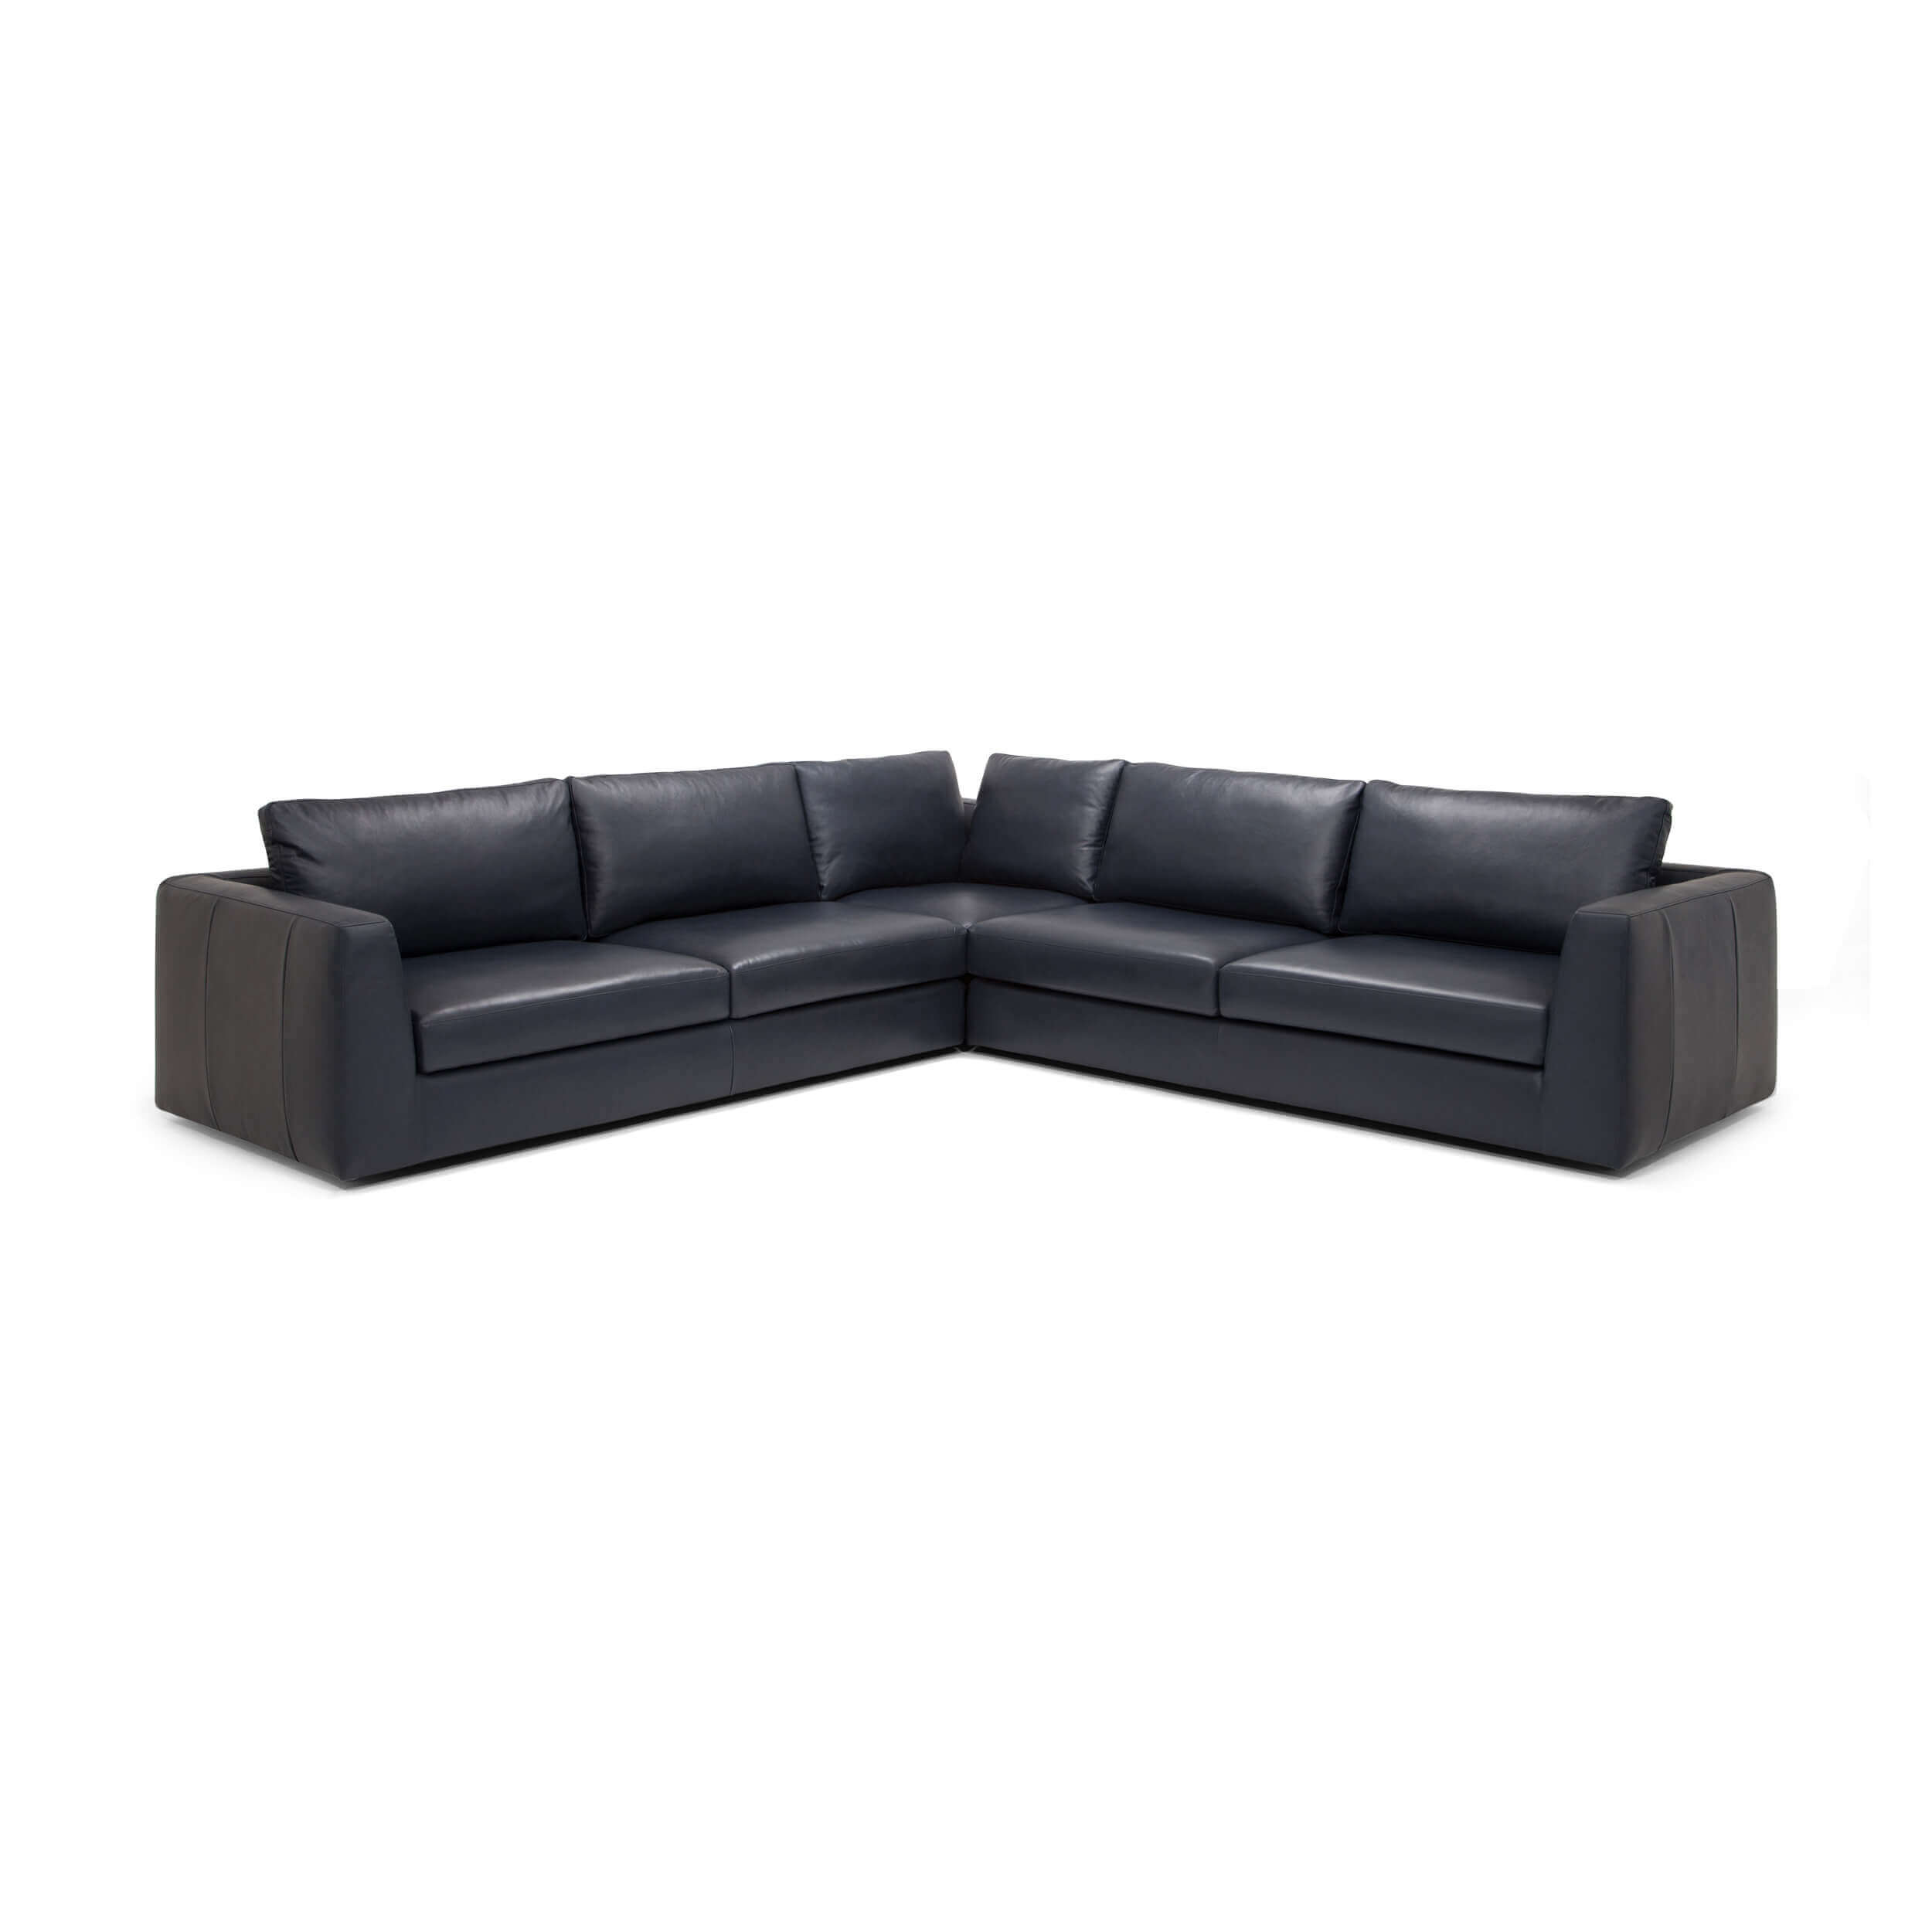 Image of: Sectional Sofas Mid Century And Modern Design Eq3